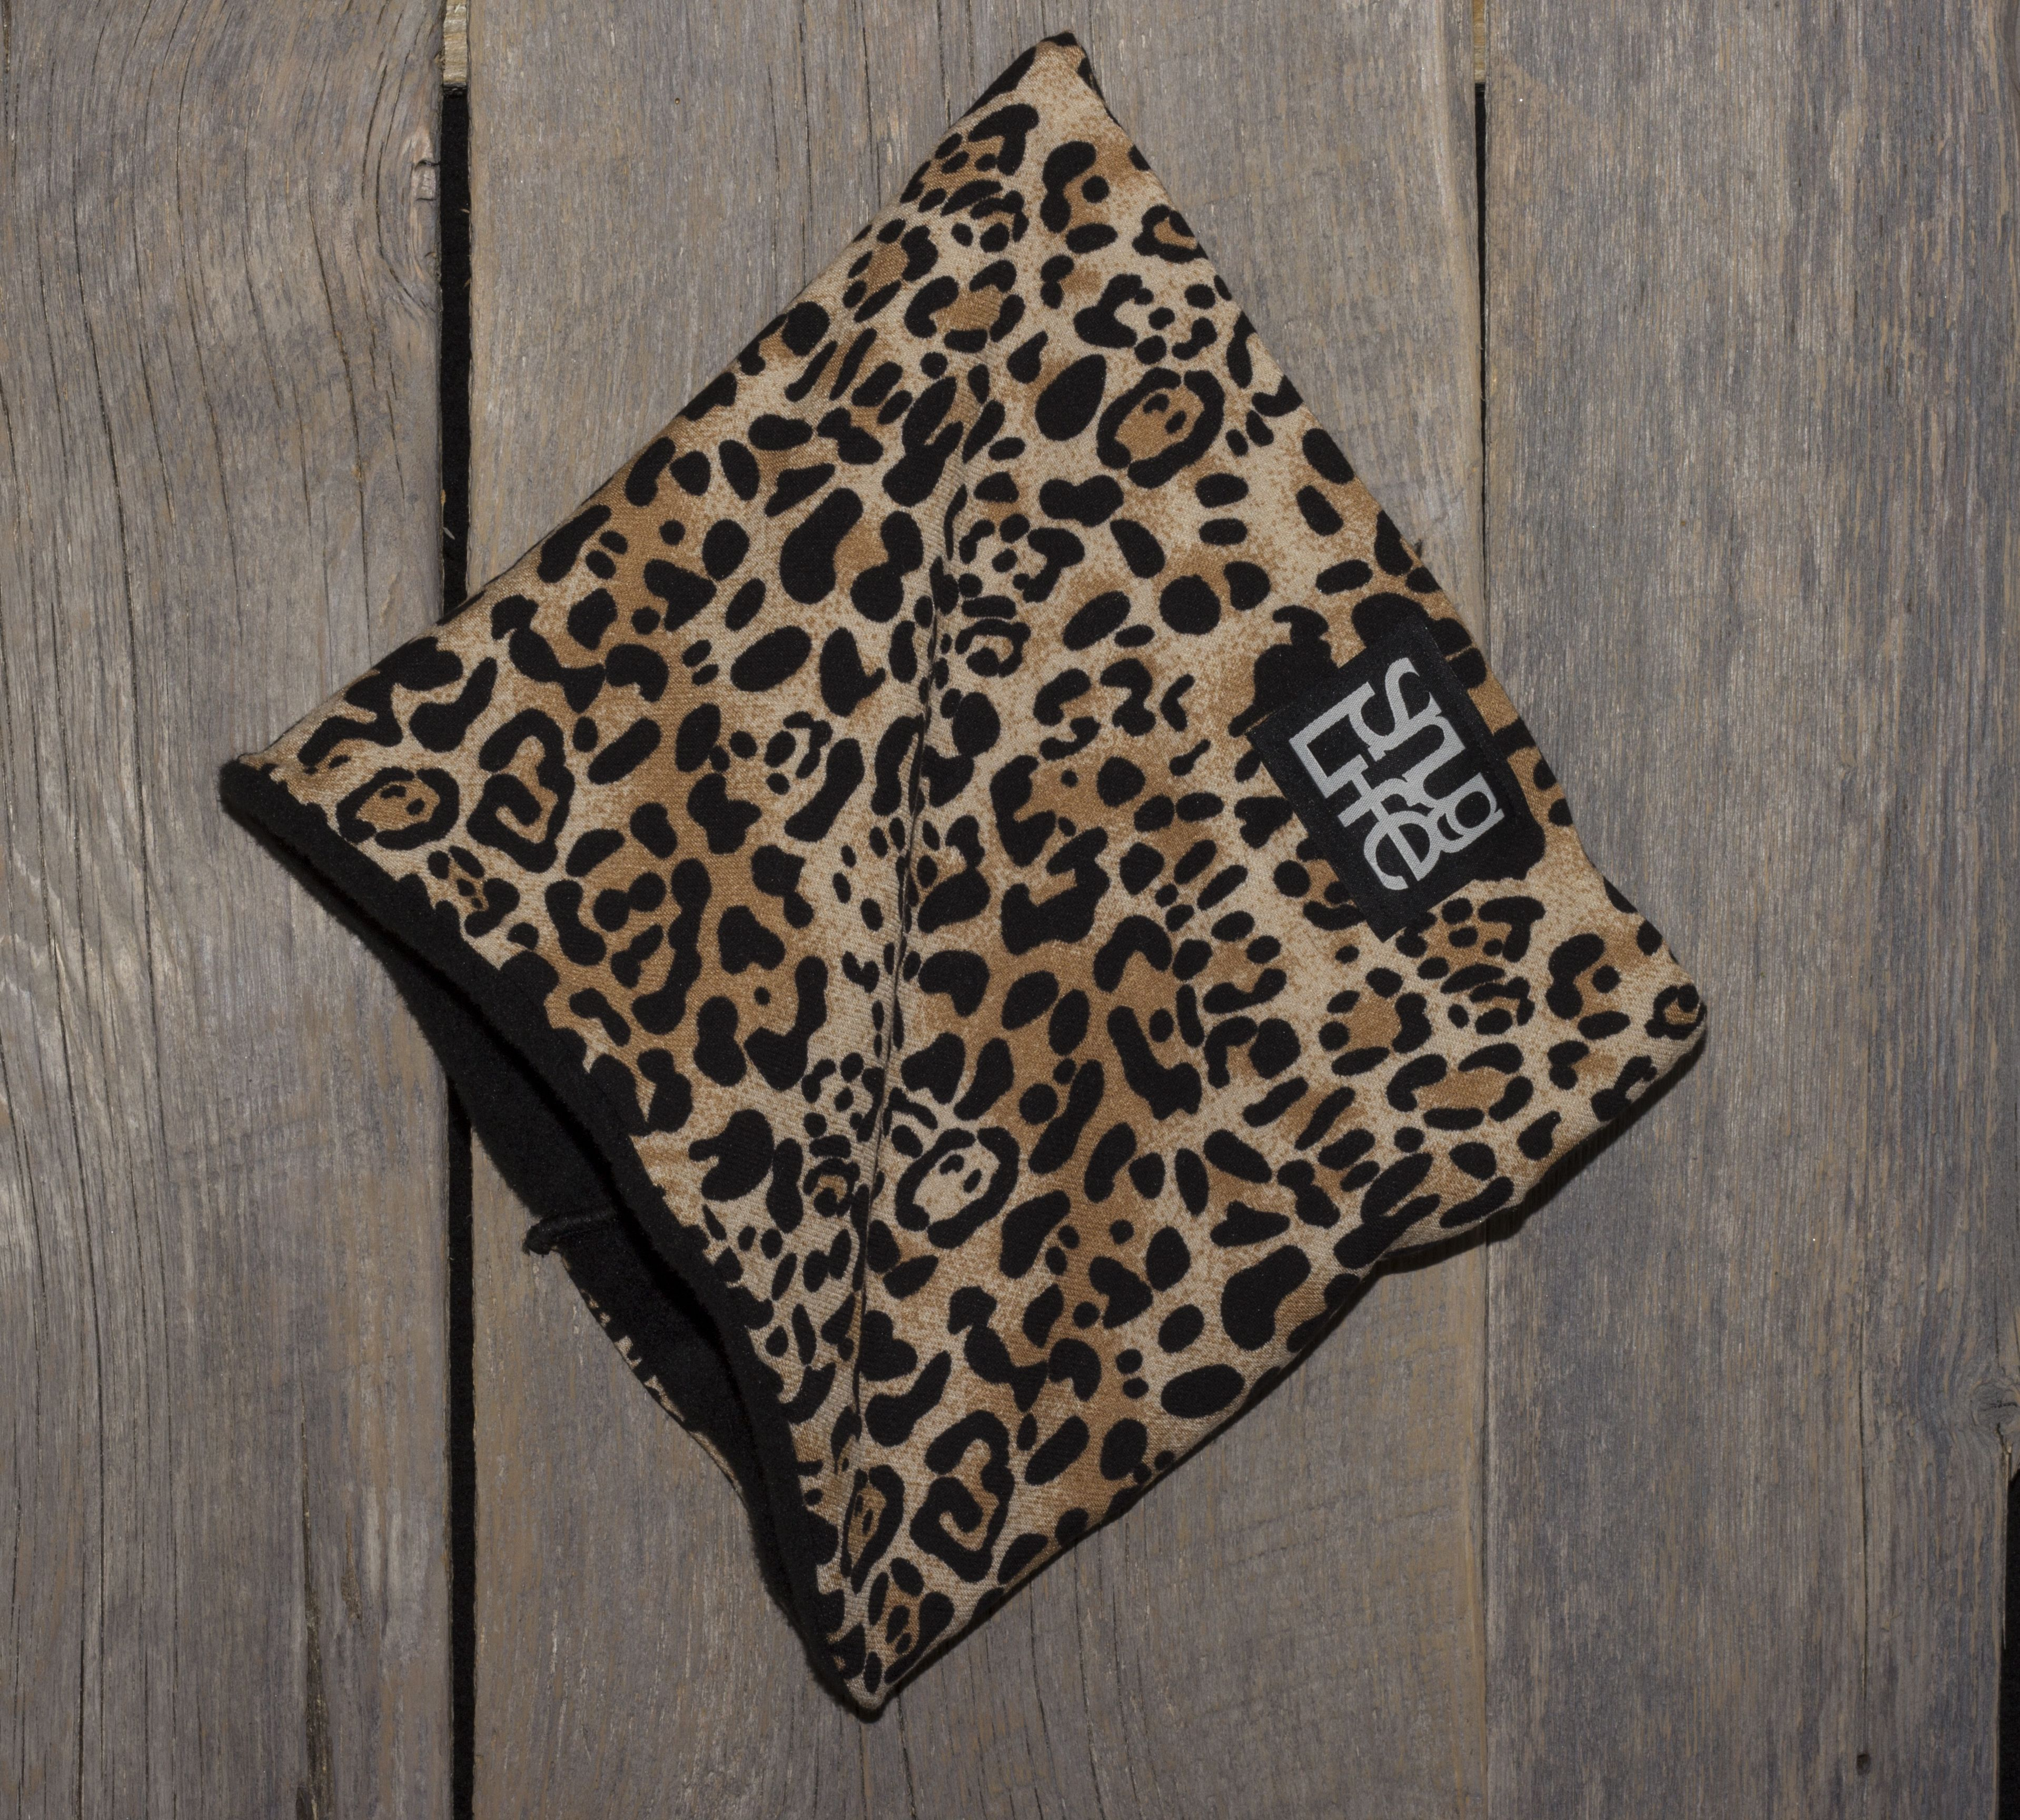 Cheetah Neck Warmer 26 00 Want This For Our Ski Trip In